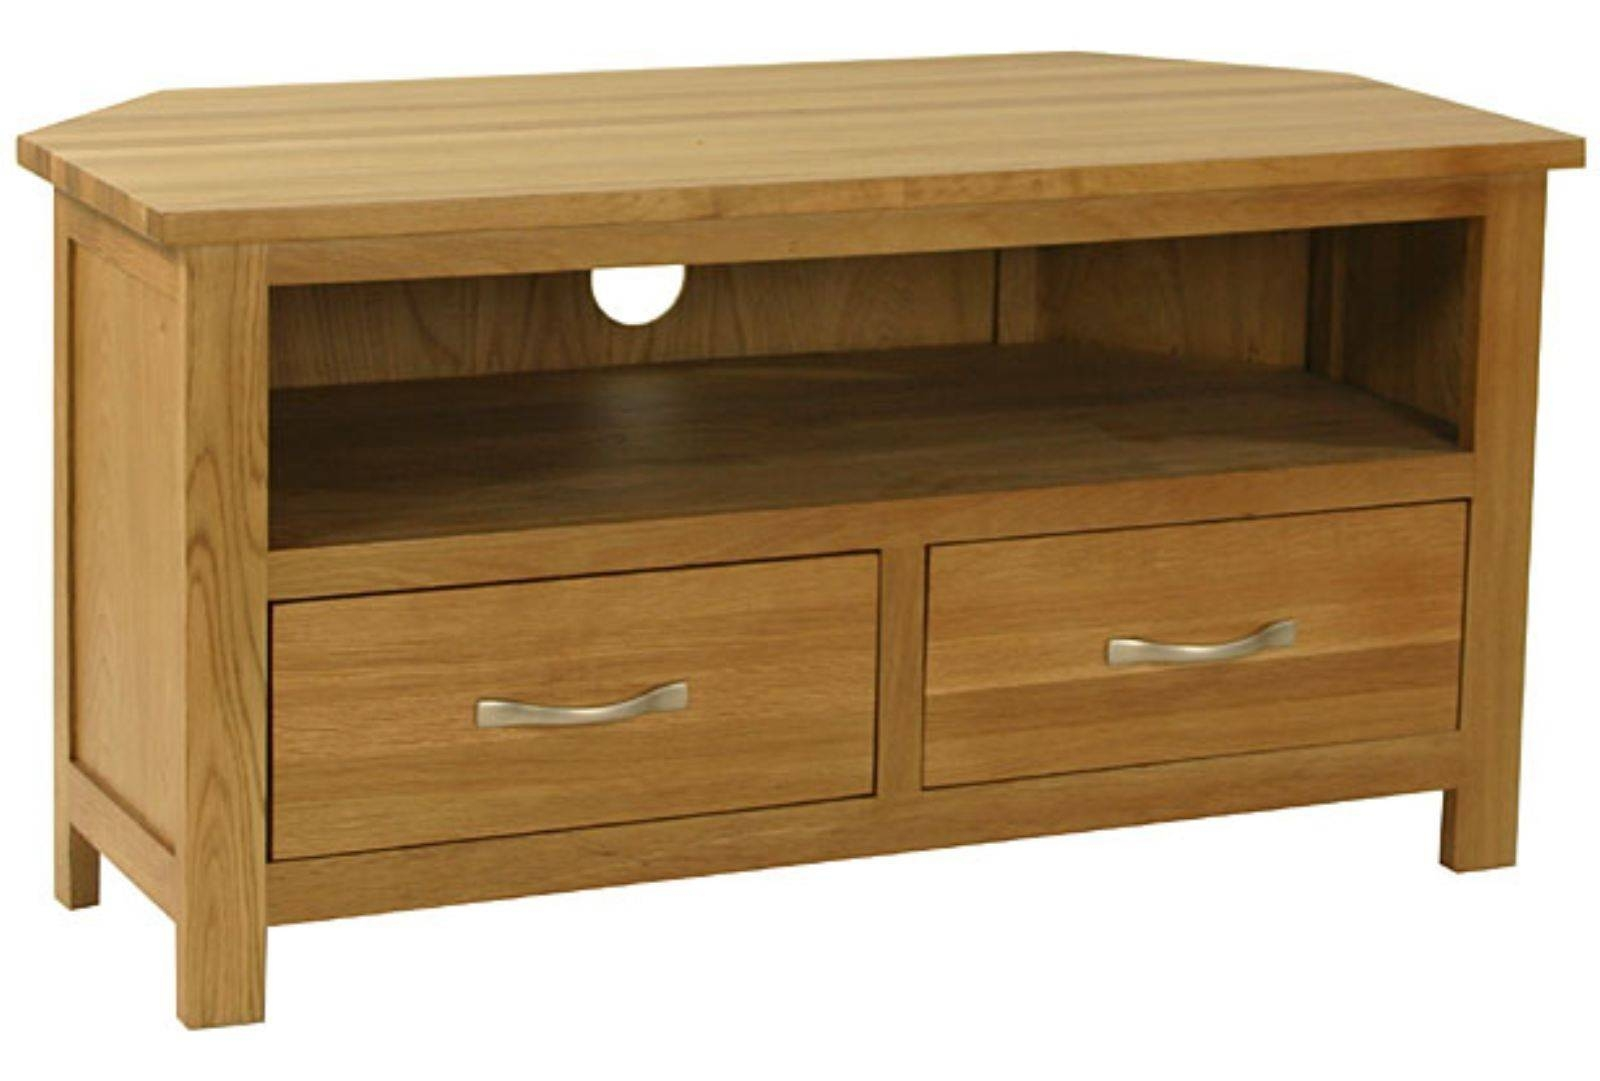 Nursing Home Furniture Corner Tv Unit From Hill & Hill Design Pertaining To Oak Corner Tv Cabinets (View 10 of 15)